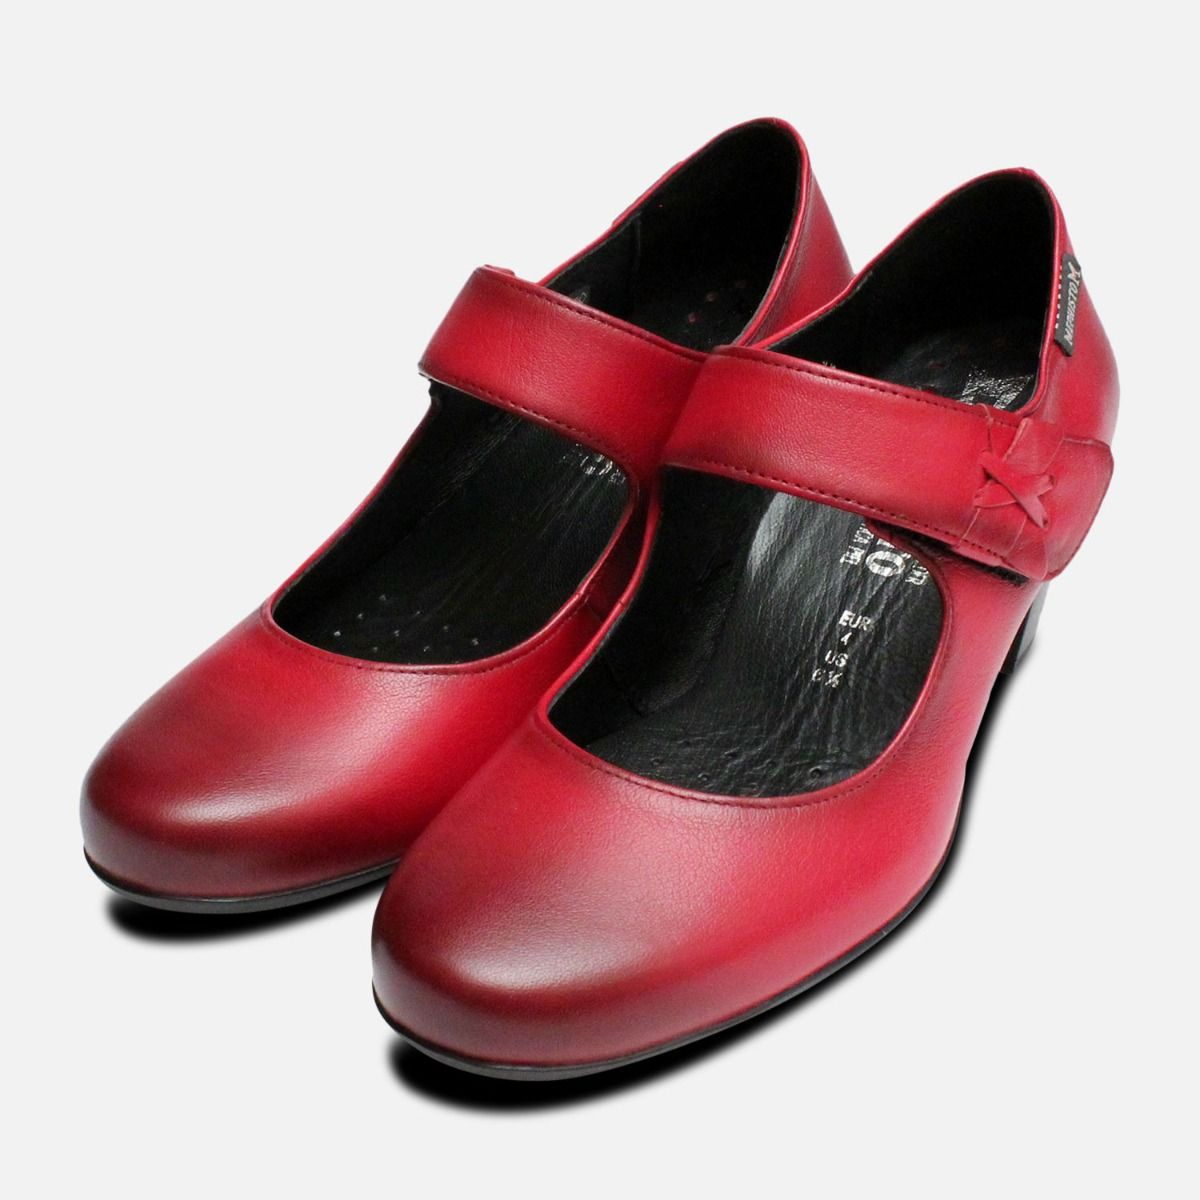 cdcb638da9 Mephisto Madisson Mary Jane Shoes in Red